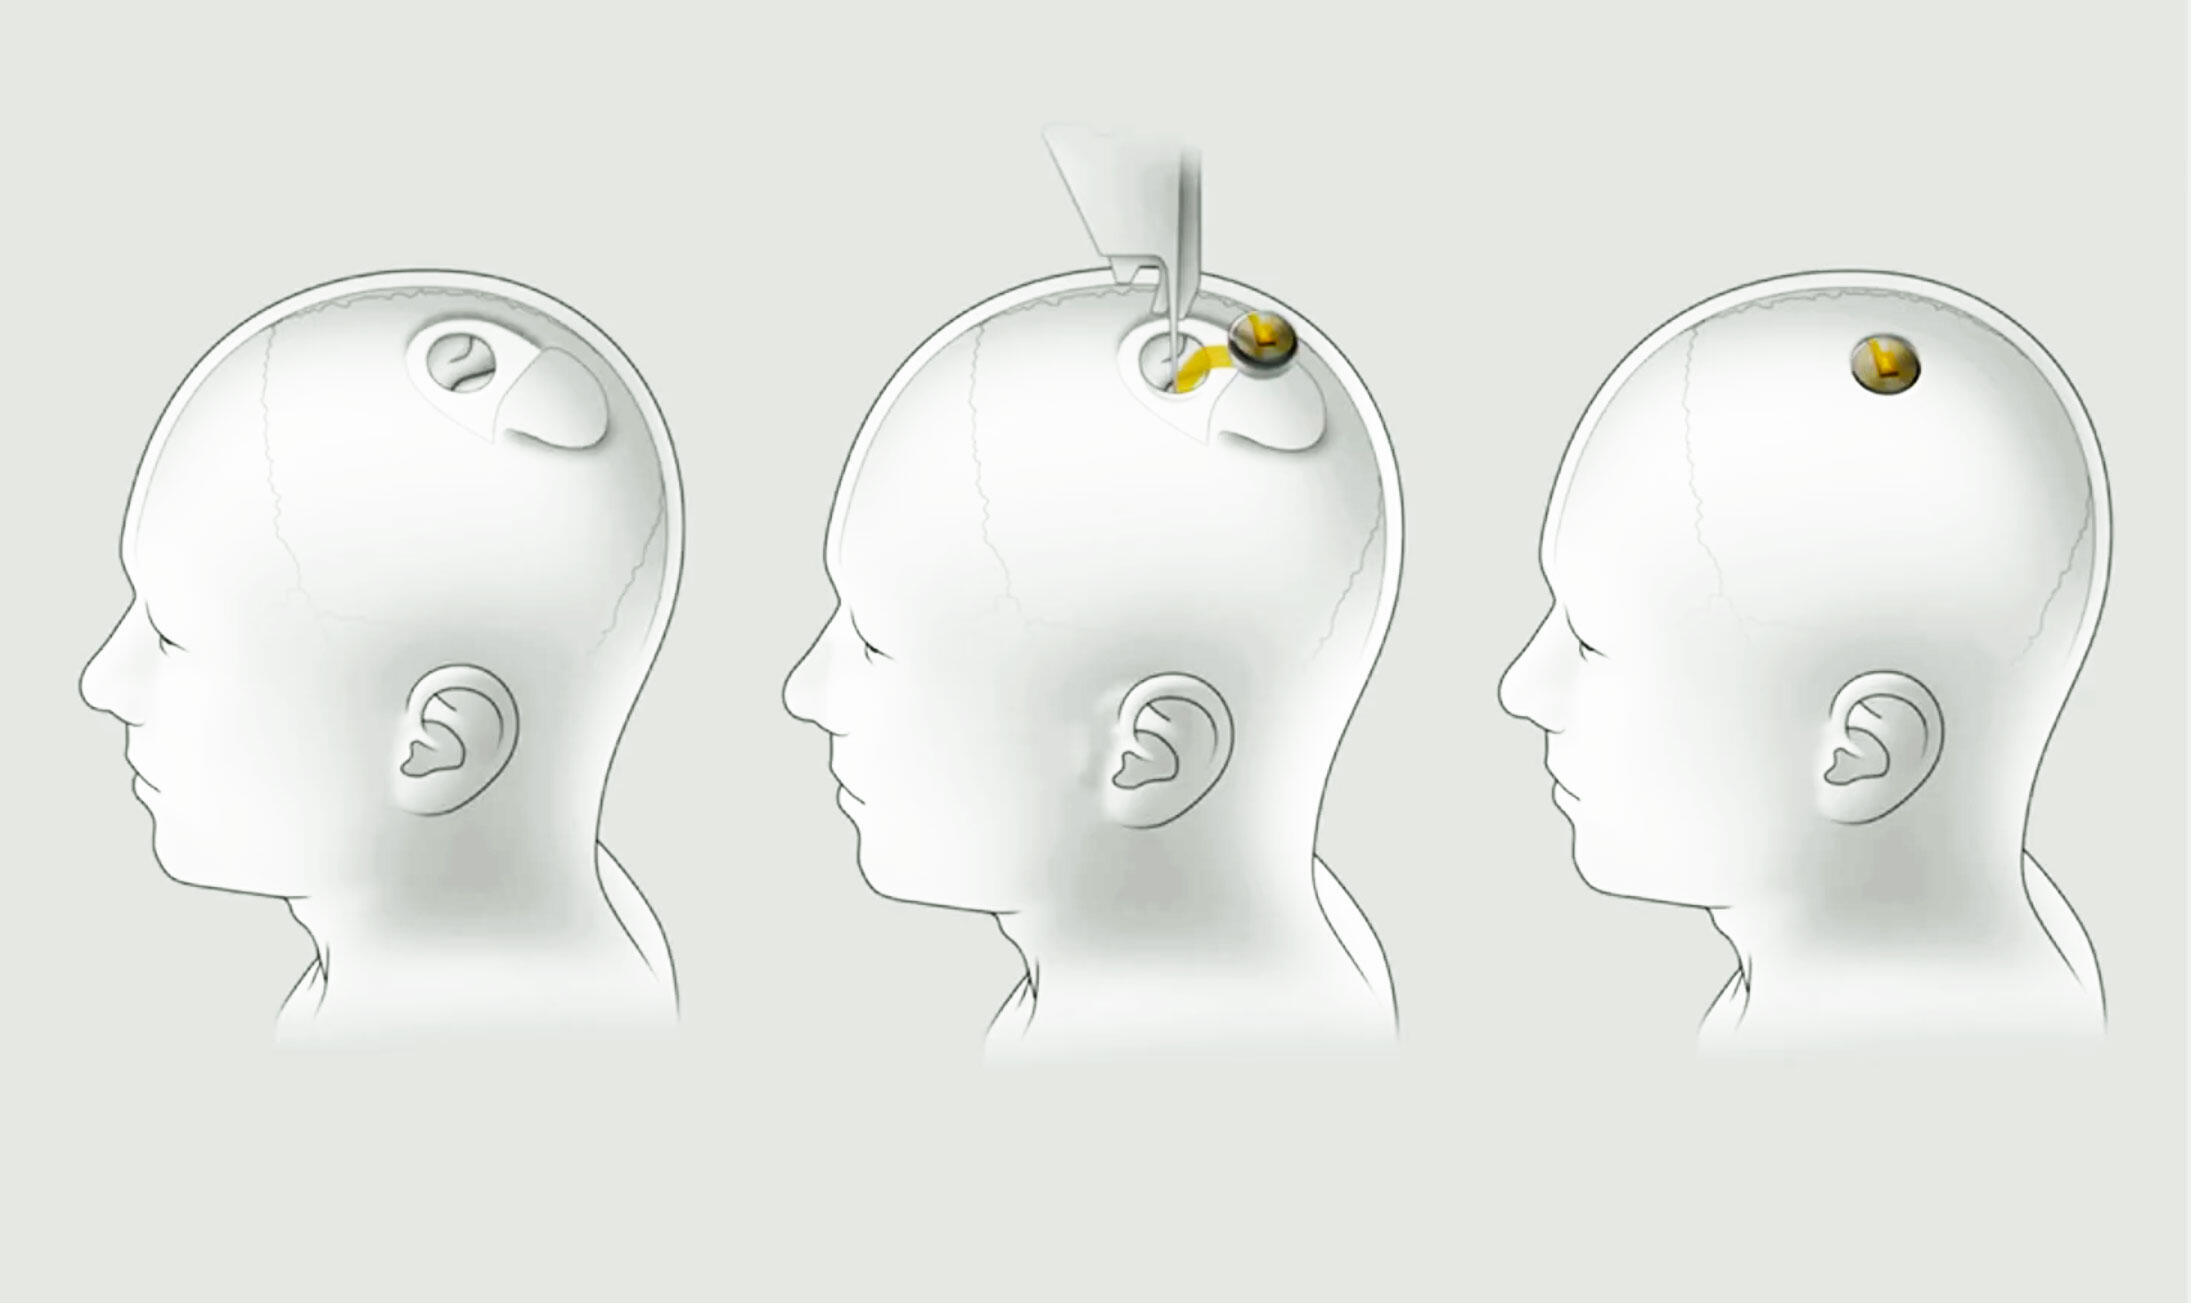 Neuralink's brain-machine interface technology sinks electrodes into the brain then uses a chip to communicate with computers outside your skull.